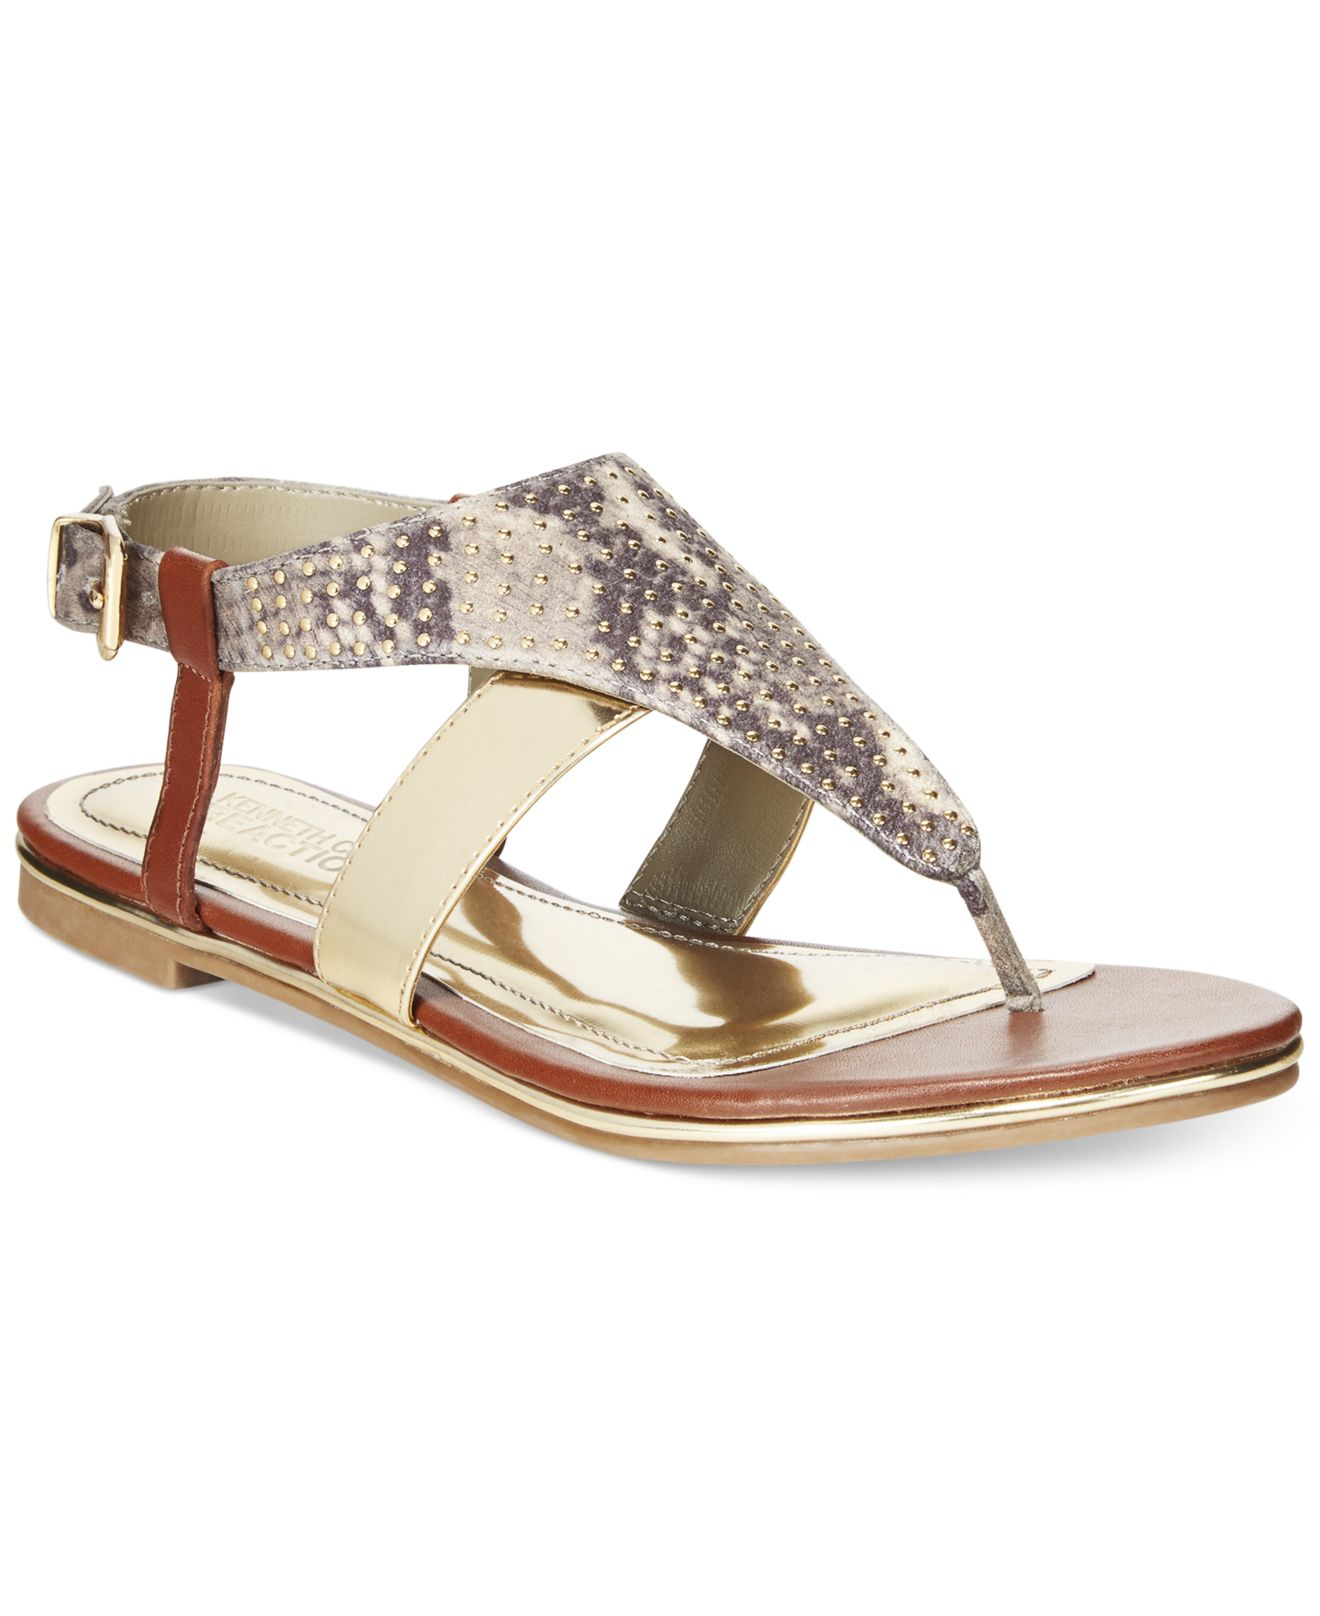 03adf83deea9 Lyst - Kenneth Cole Reaction Melinda Thong Sandals in Natural